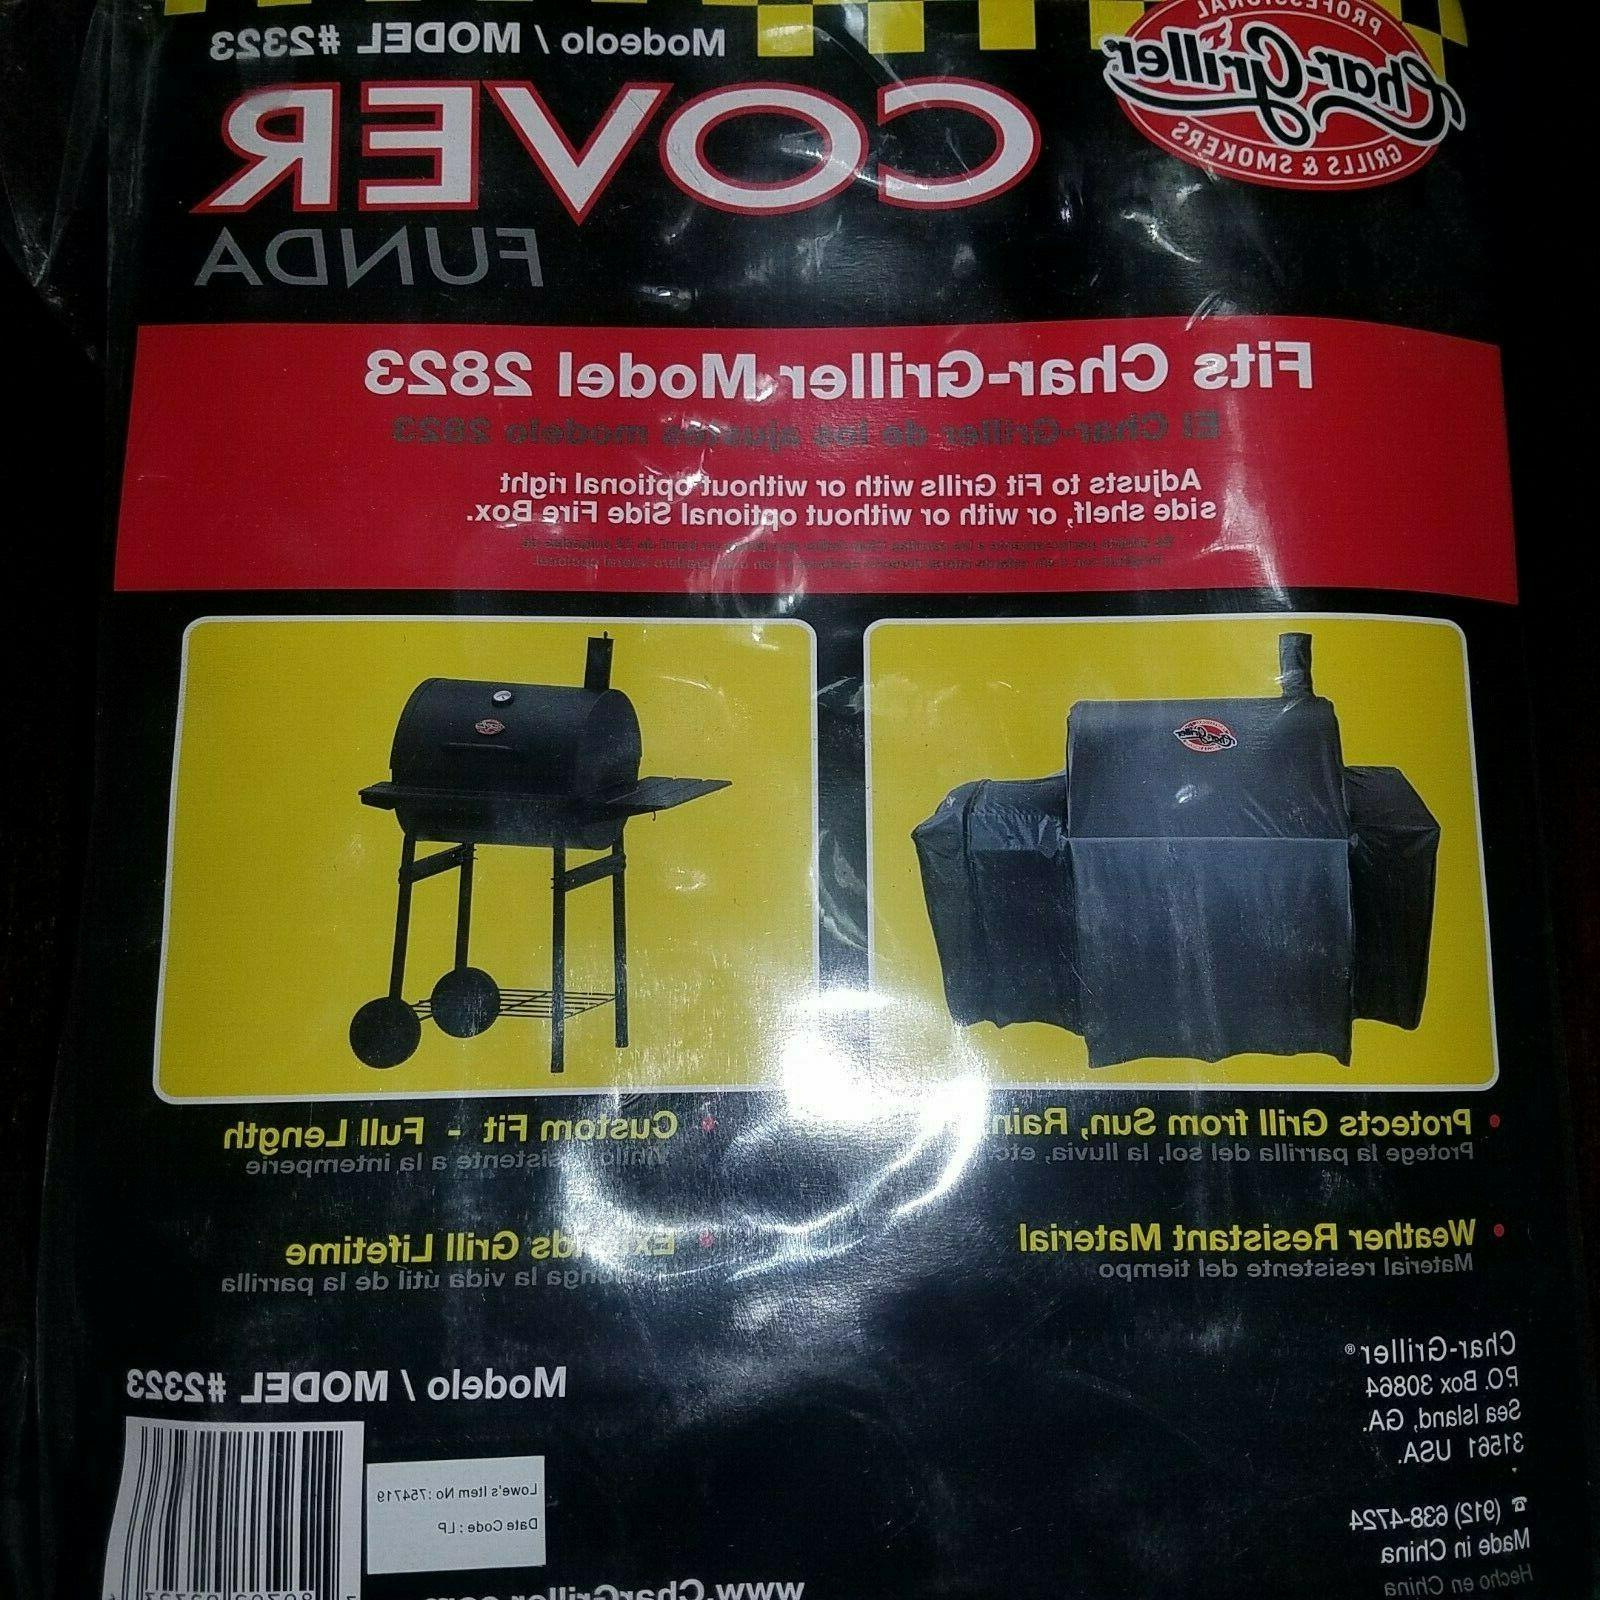 char griller grills and smokers model chargriller